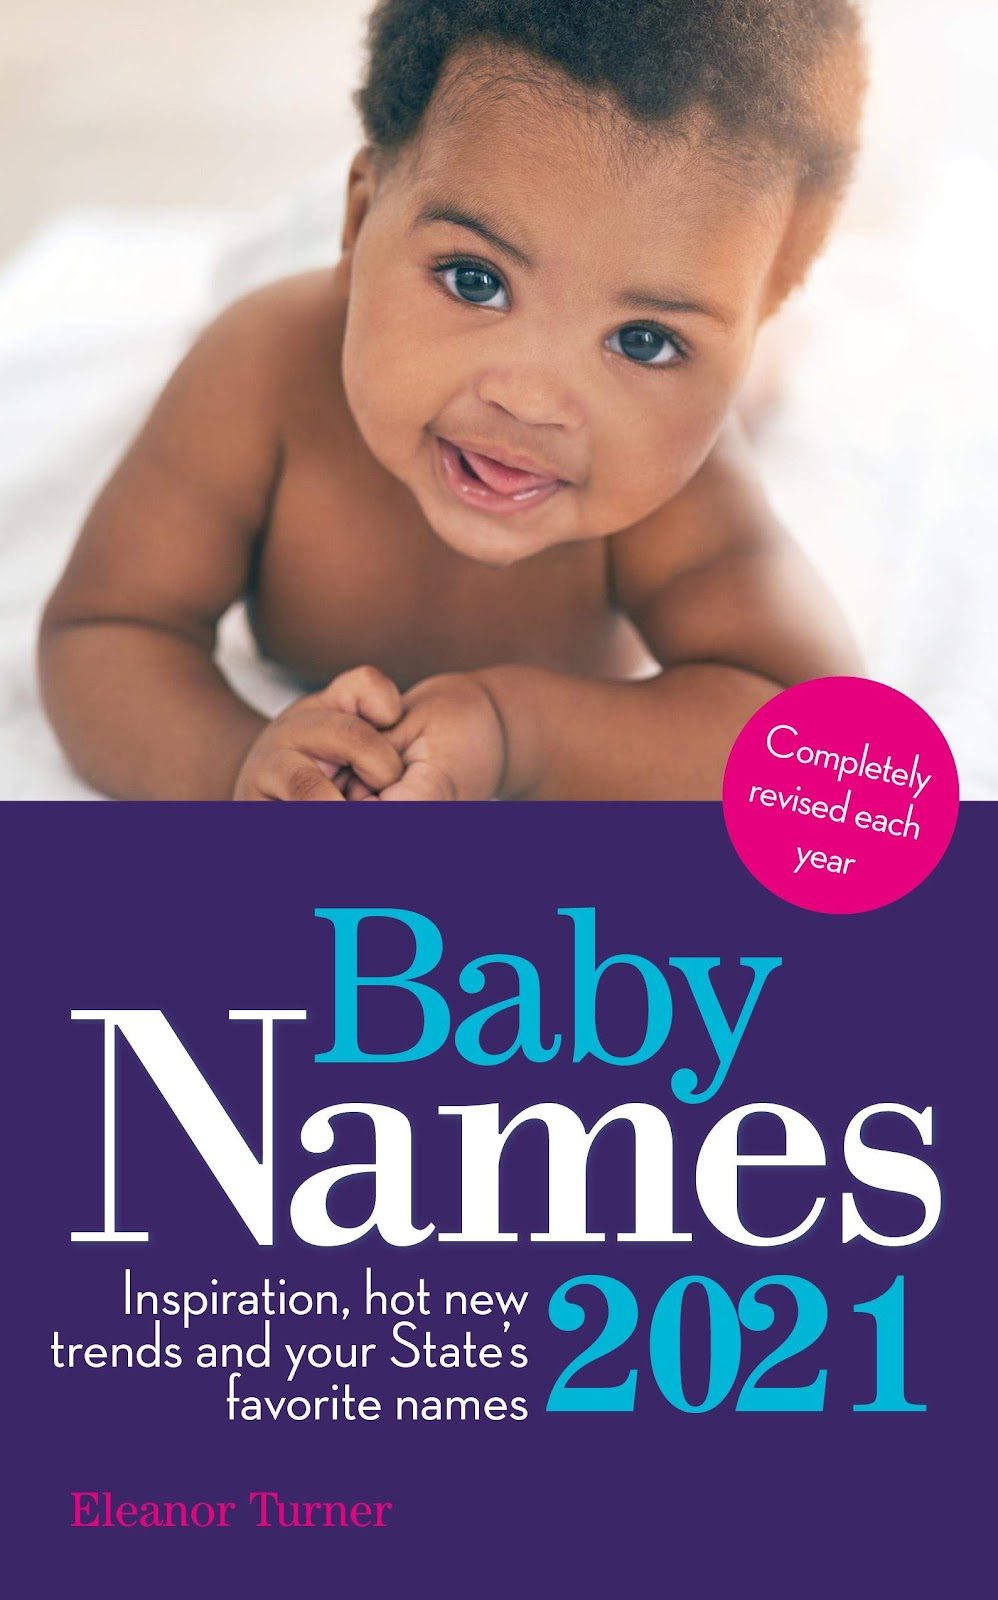 Newest Baby Name Book - Baby Names 2021